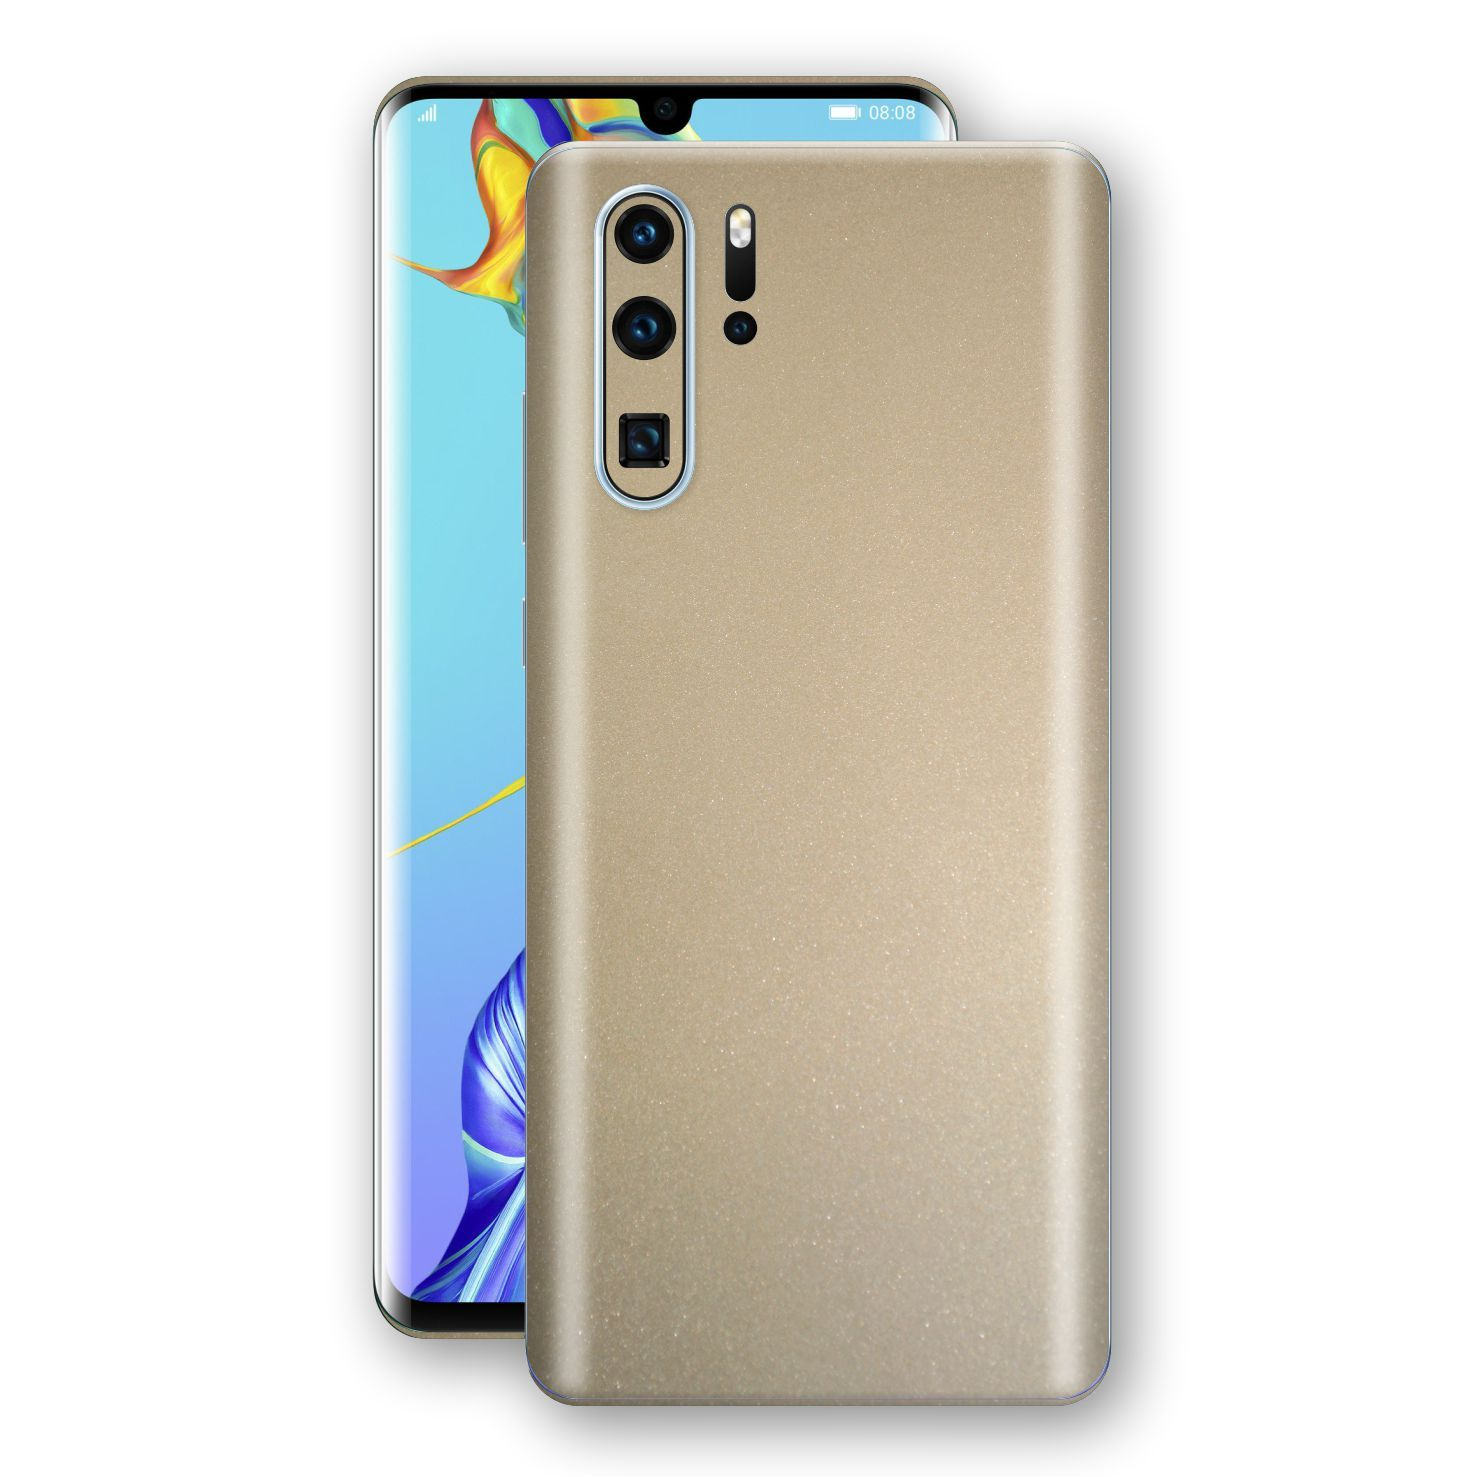 Huawei P30 PRO Champagne Gold Glossy Metallic Skin, Decal, Wrap, Protector, Cover by EasySkinz | EasySkinz.com